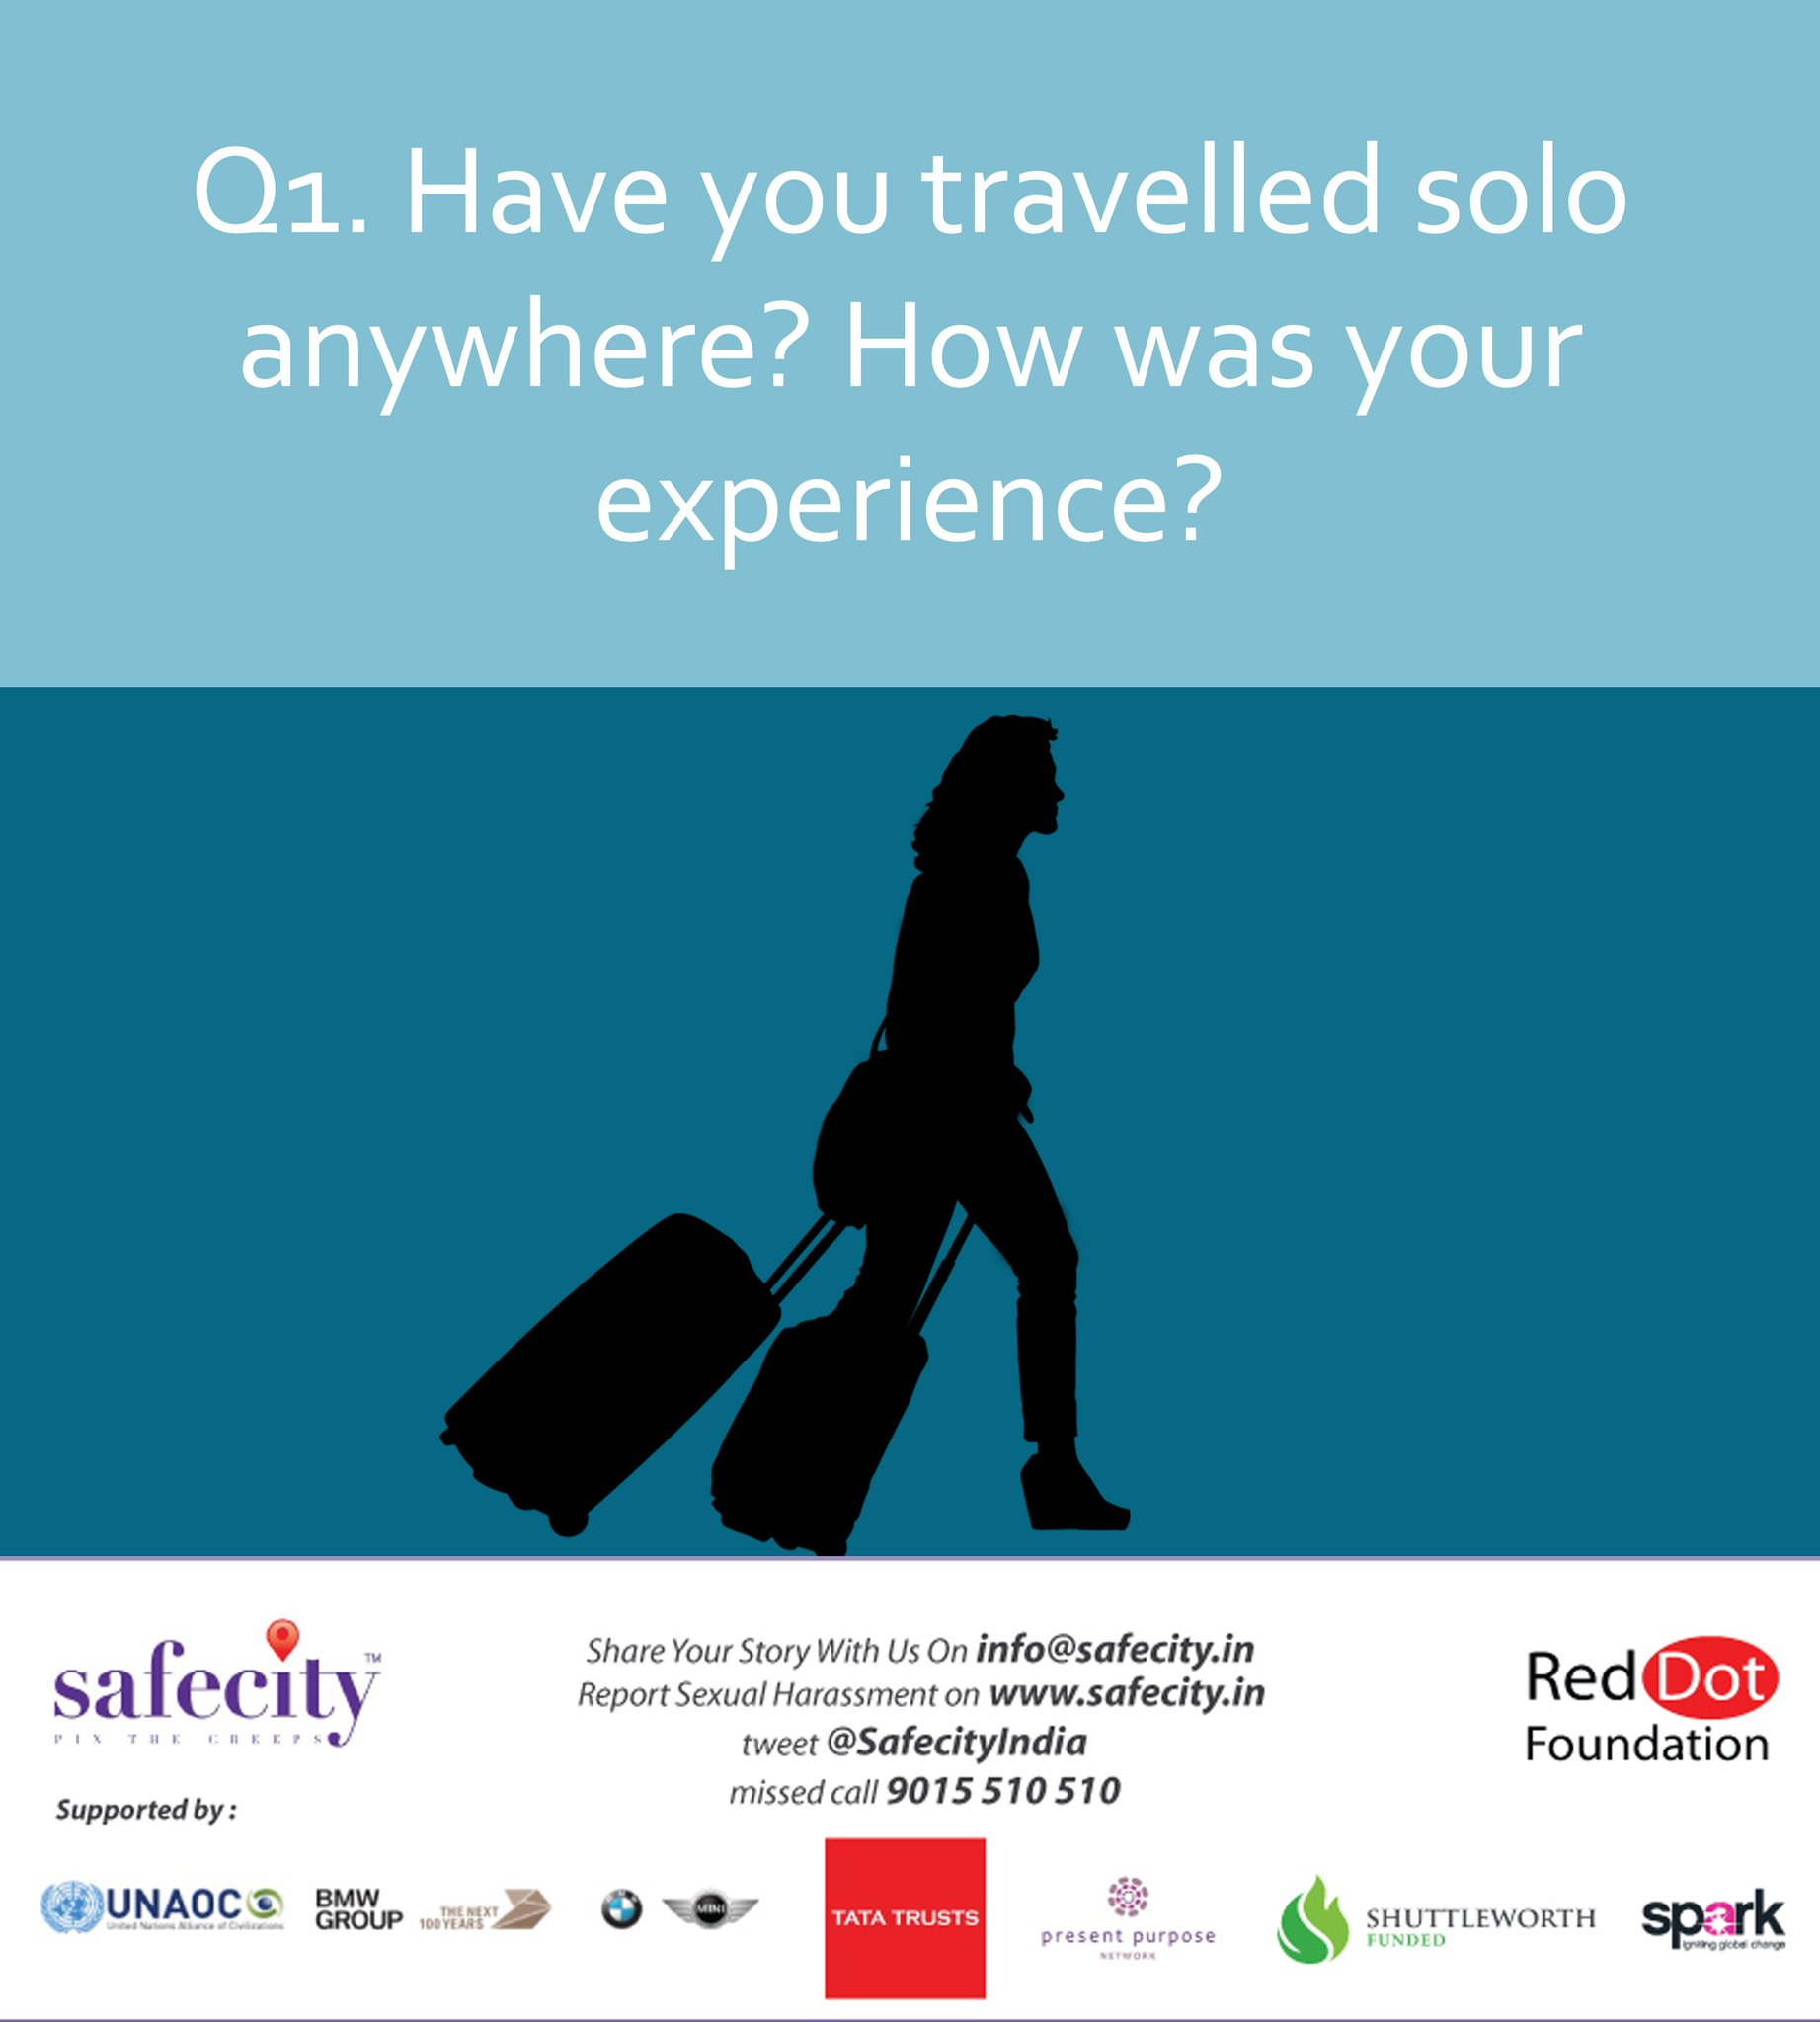 Here is the first question #solotravel #safety https://t.co/3yyjZy9dUA